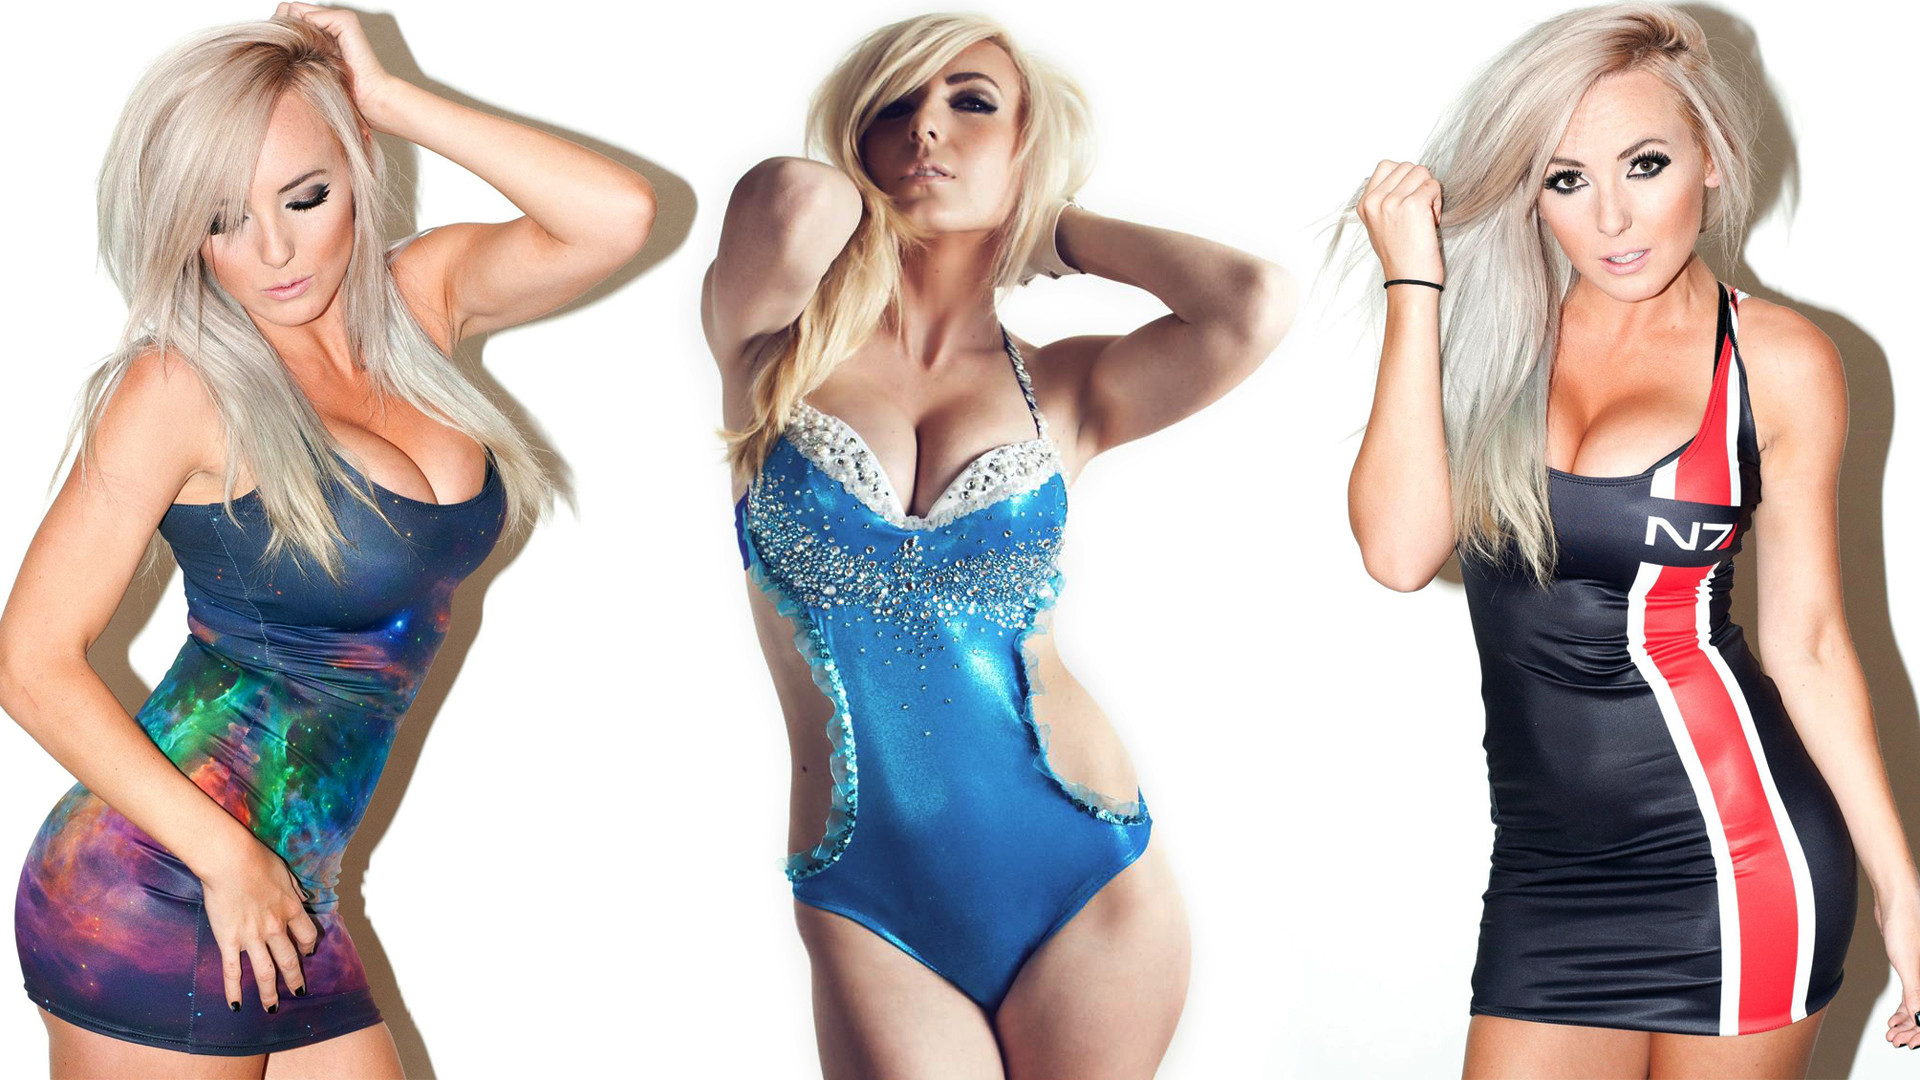 Awesome Pictures Jessica Nigri Super HD 27 Wallpapers 1920x1080